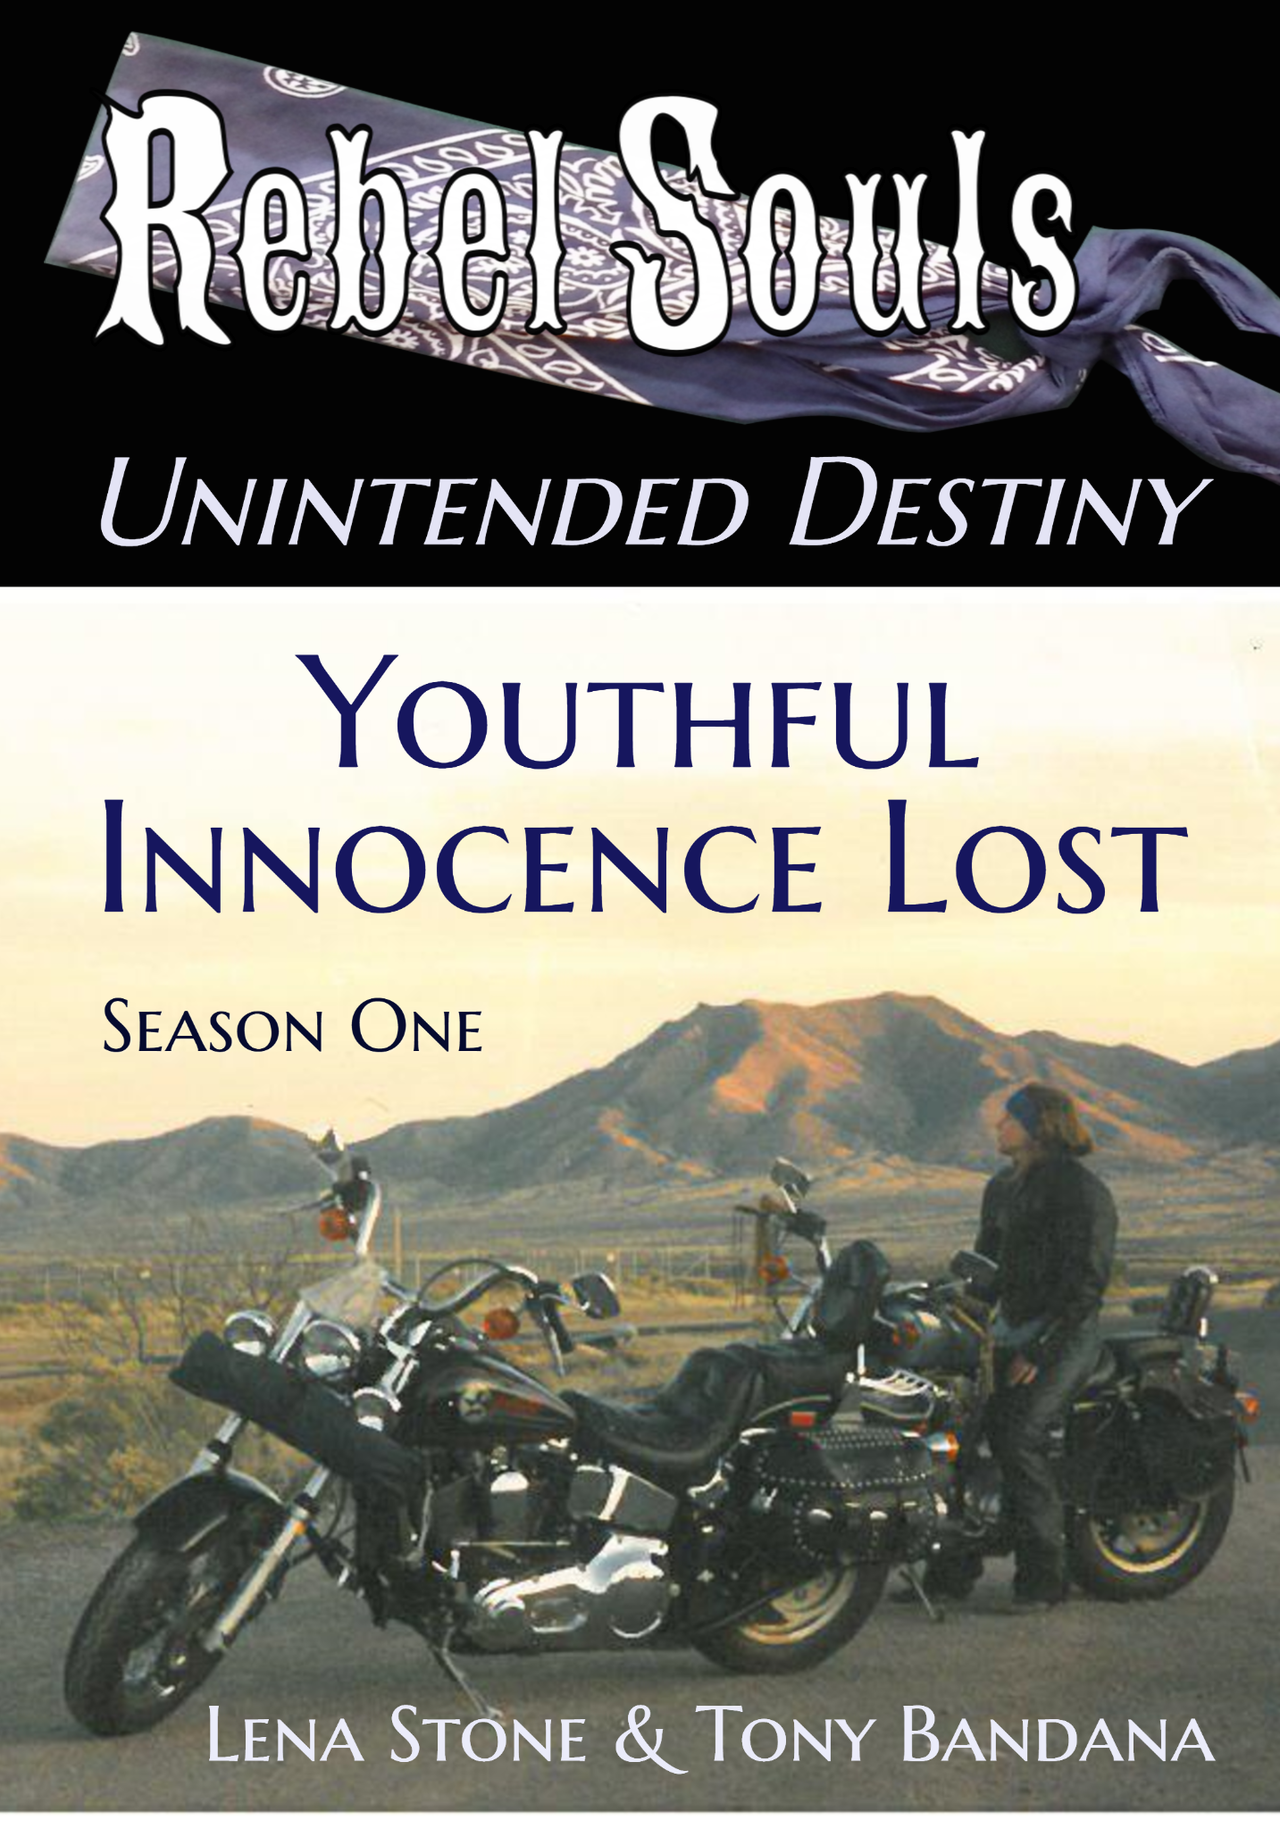 3. Season One - Complete - Kindle, Amazon, .mobi Version